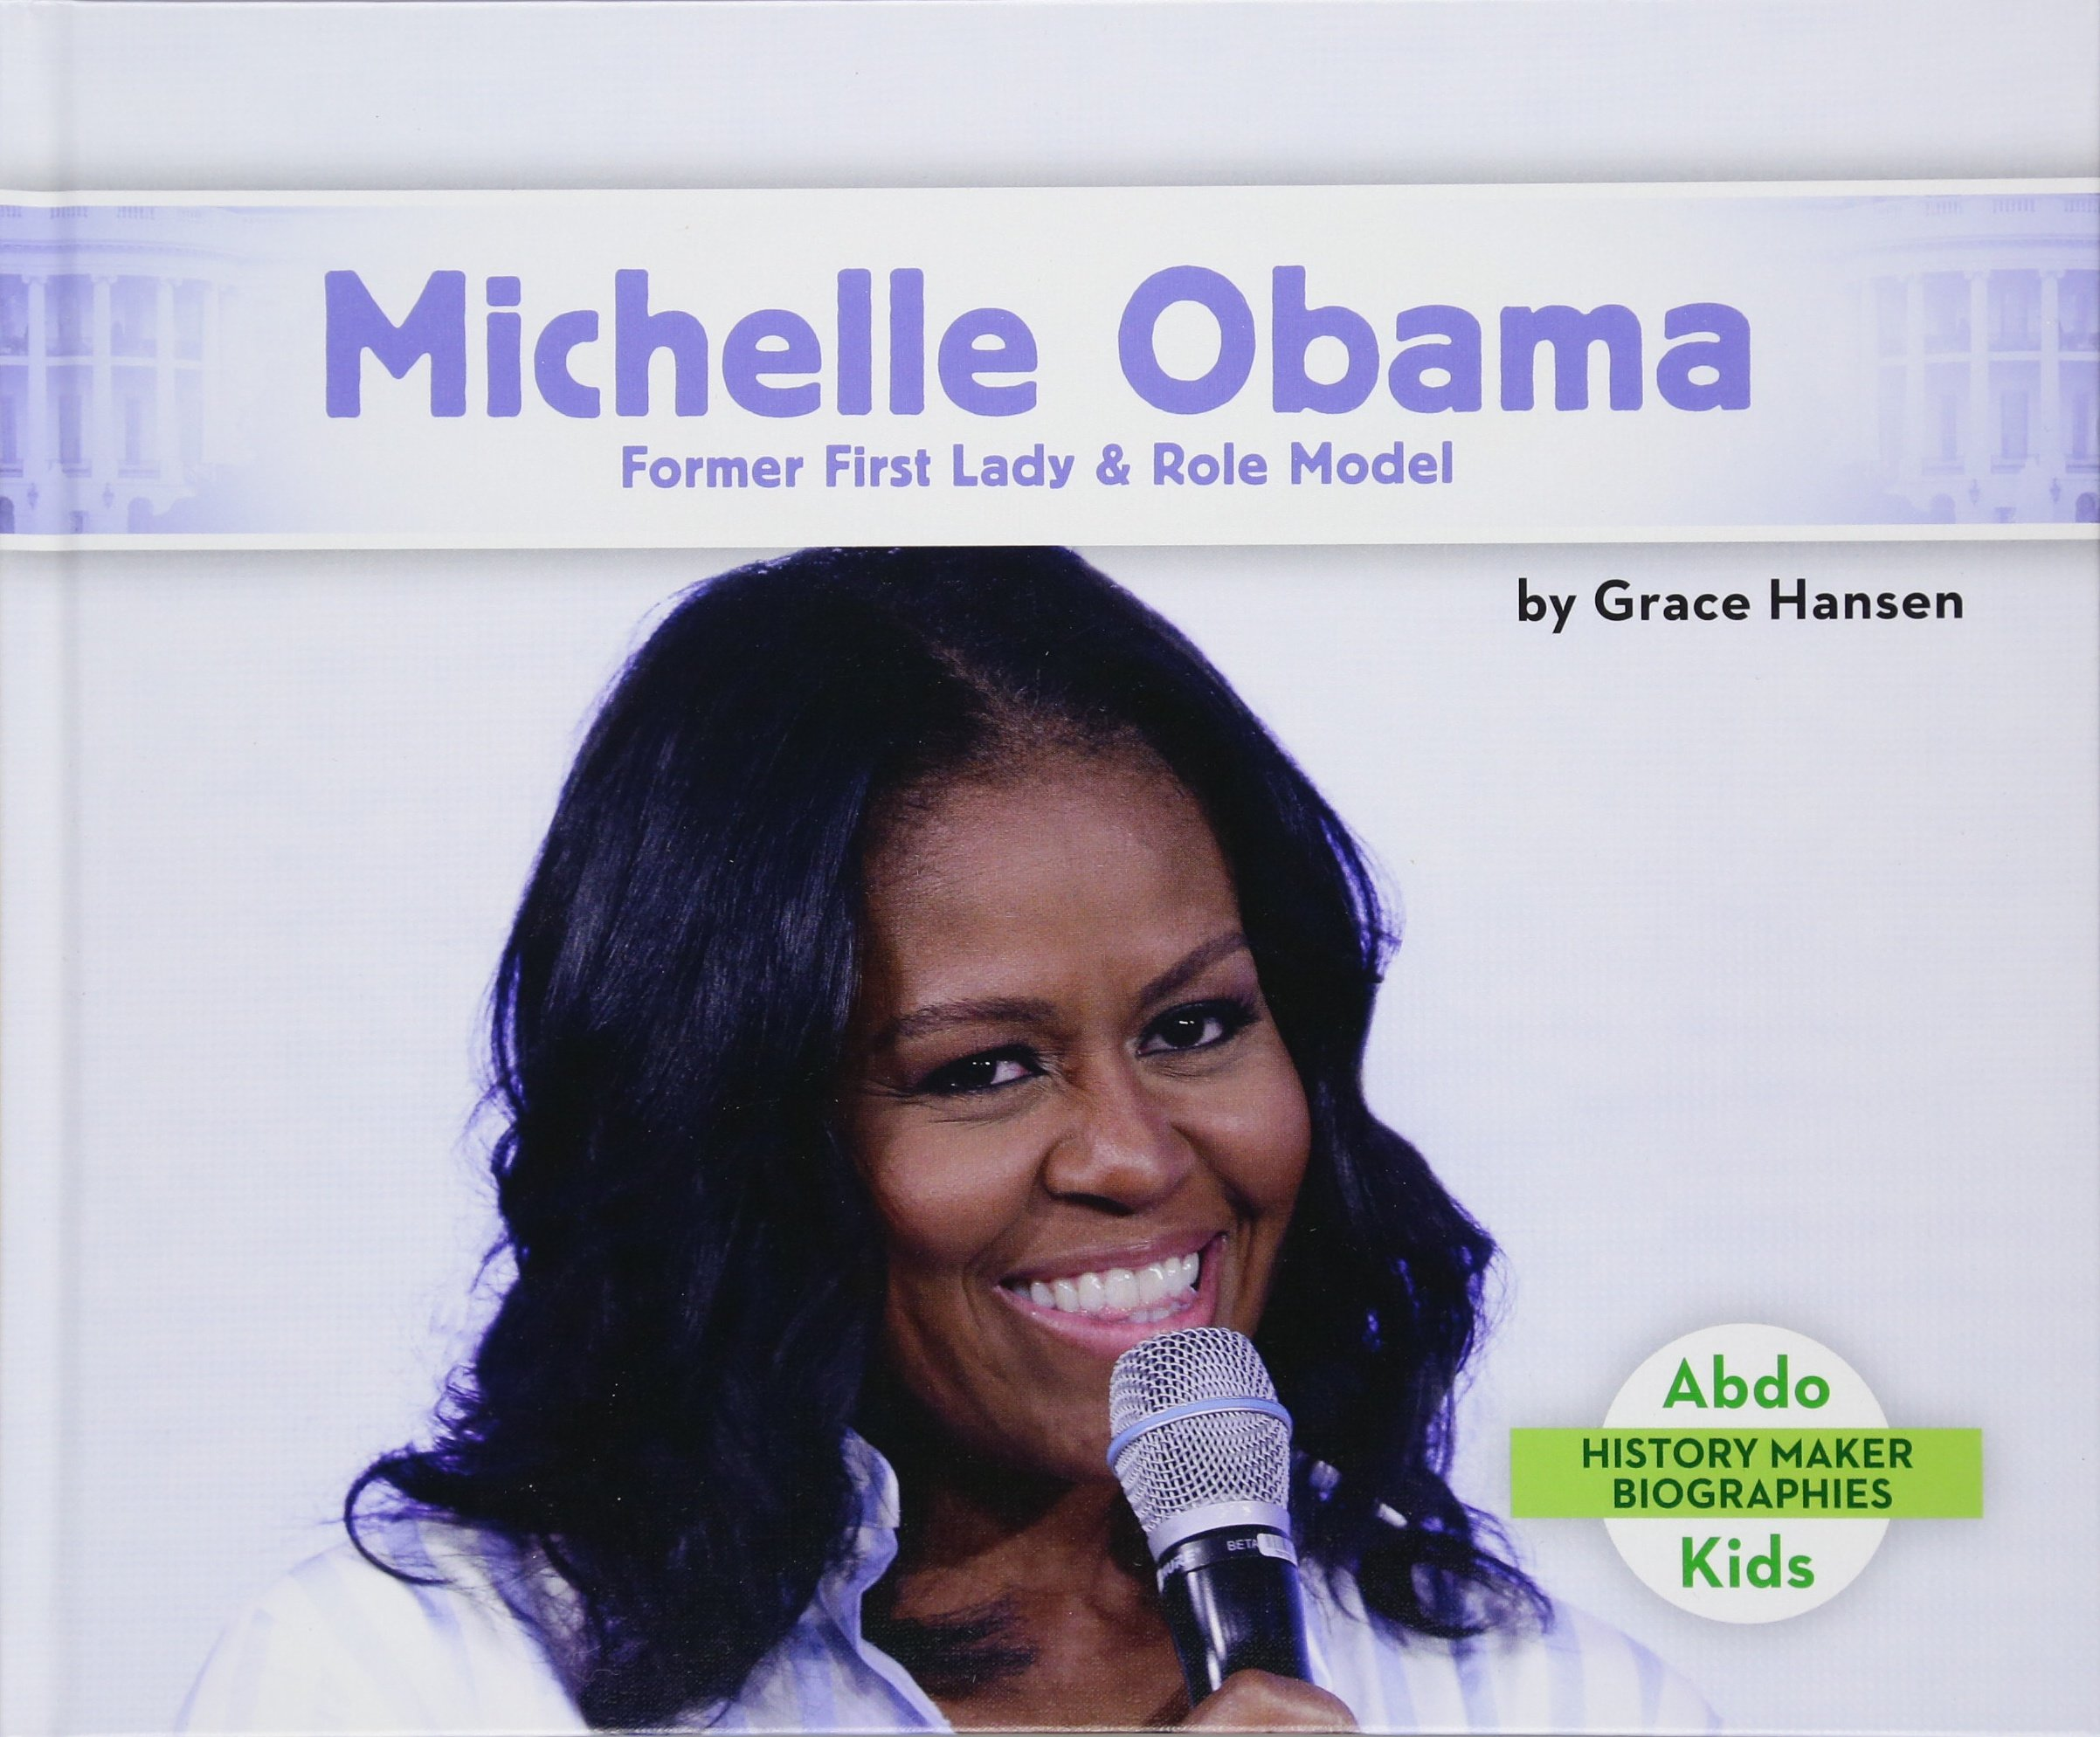 Michelle Obama: Former First Lady & Role Model (History Maker Biographies)